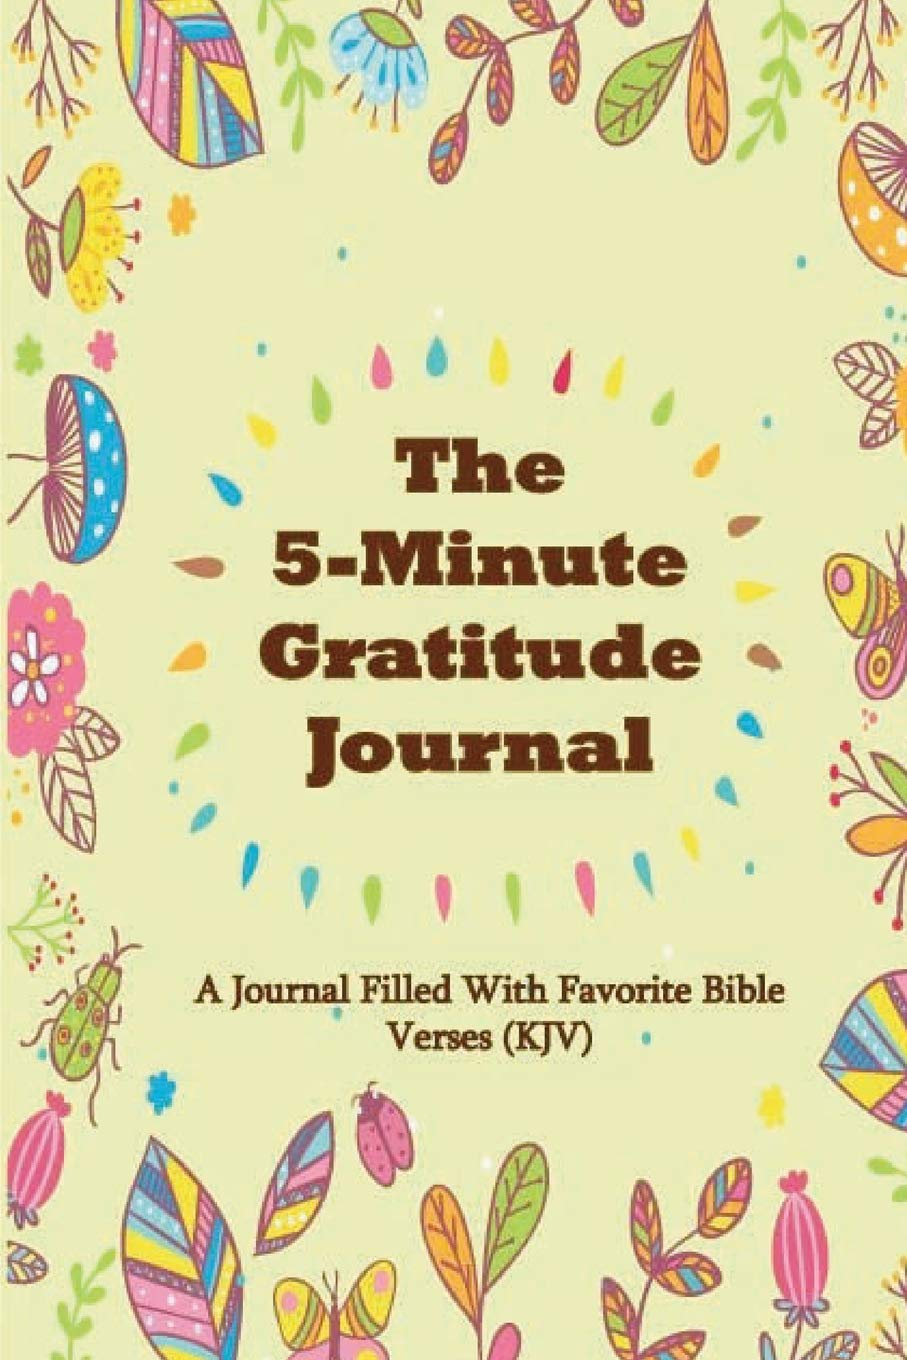 Download The 5-Minute Gratitude Journal: A Journal Filled With Favorite Bible Verses (KJV)Journal for Self-Exploration (Volume 6) PDF